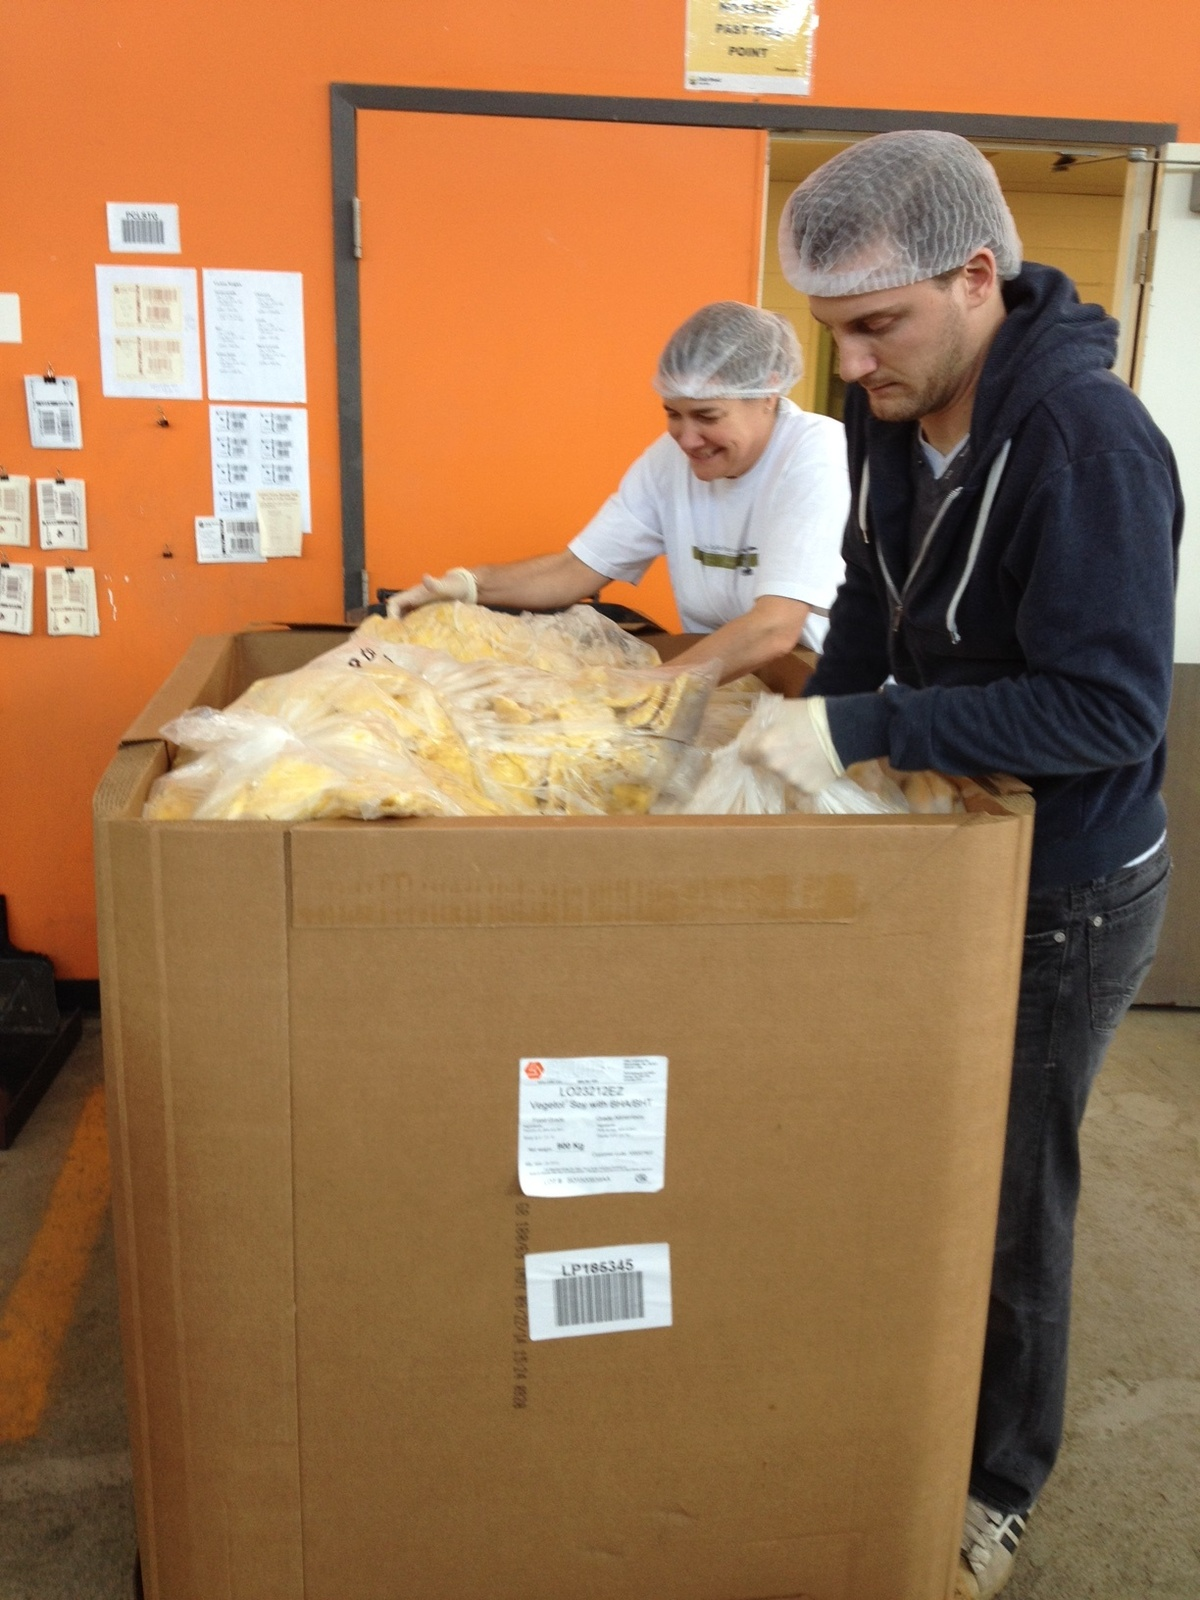 Volunteering at the Daily Bread Food Bank - Julie and Tyler